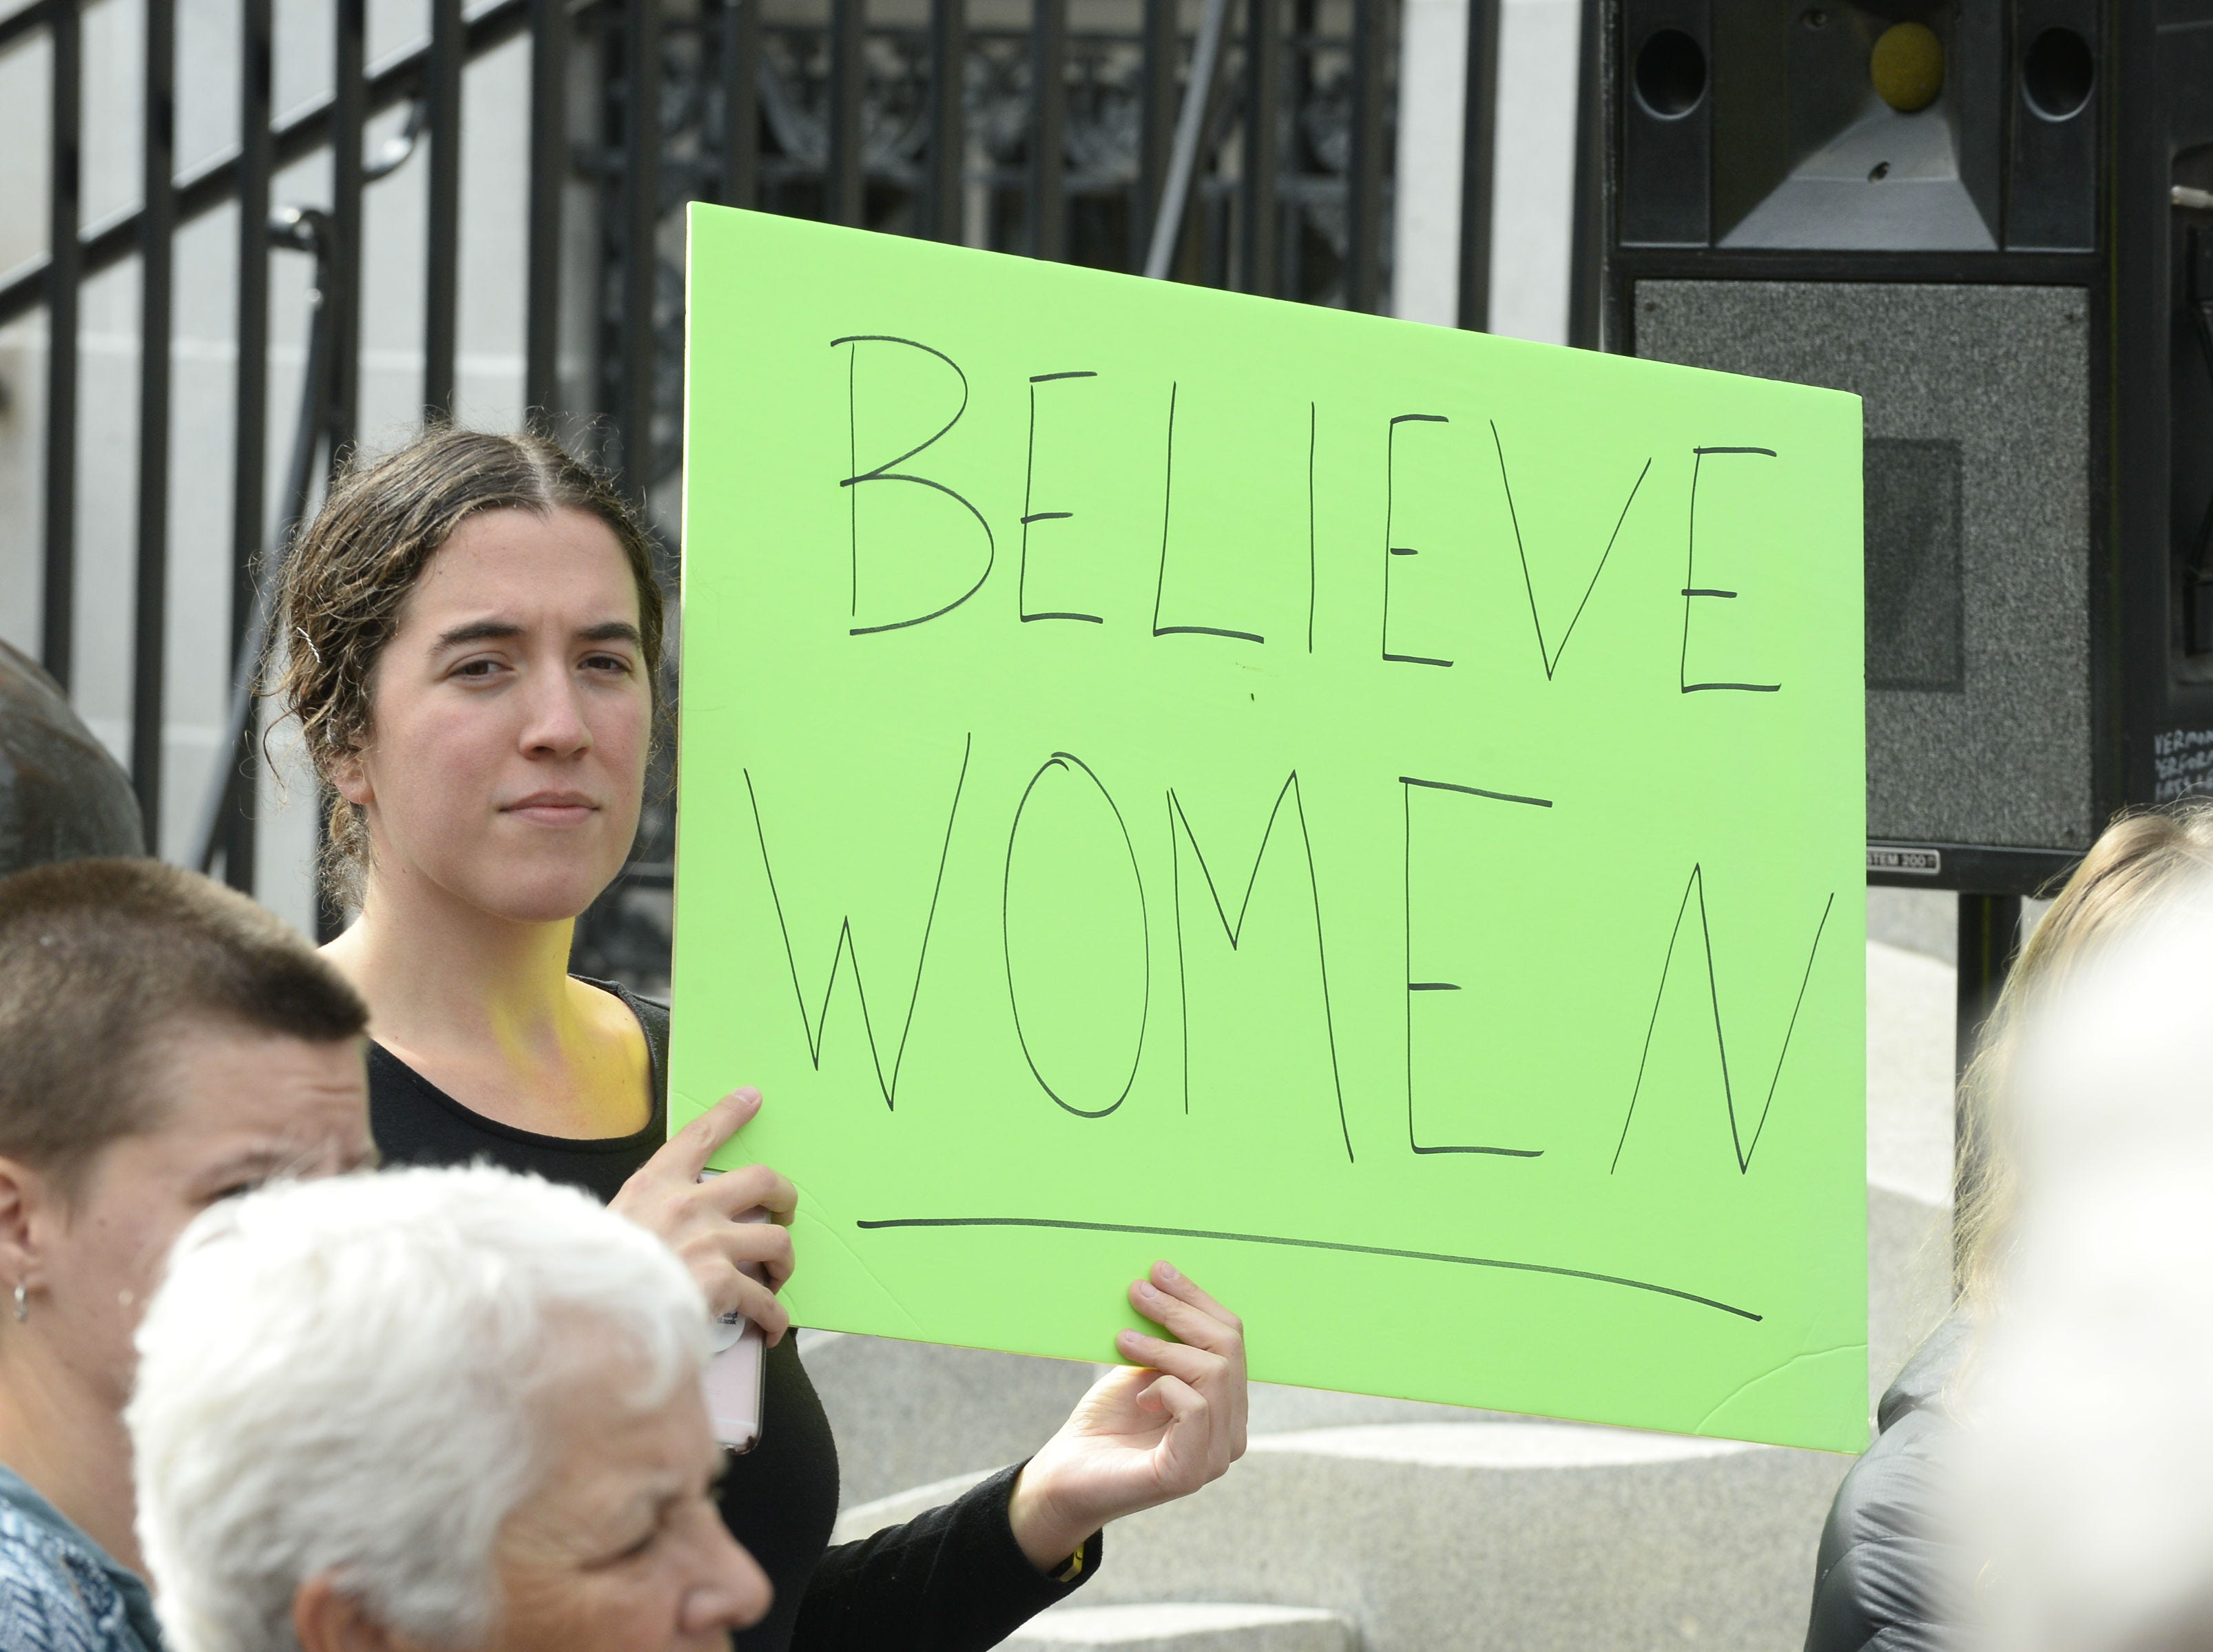 A woman holds a sign in front of City Hall as people gather after marching through Burlington Saturday, Oct. 6, 2018, against the confirmation of Supreme Court Justice Brett Kavanaugh. About 100 people turned out for the march down Church Street and around City Hall Park.